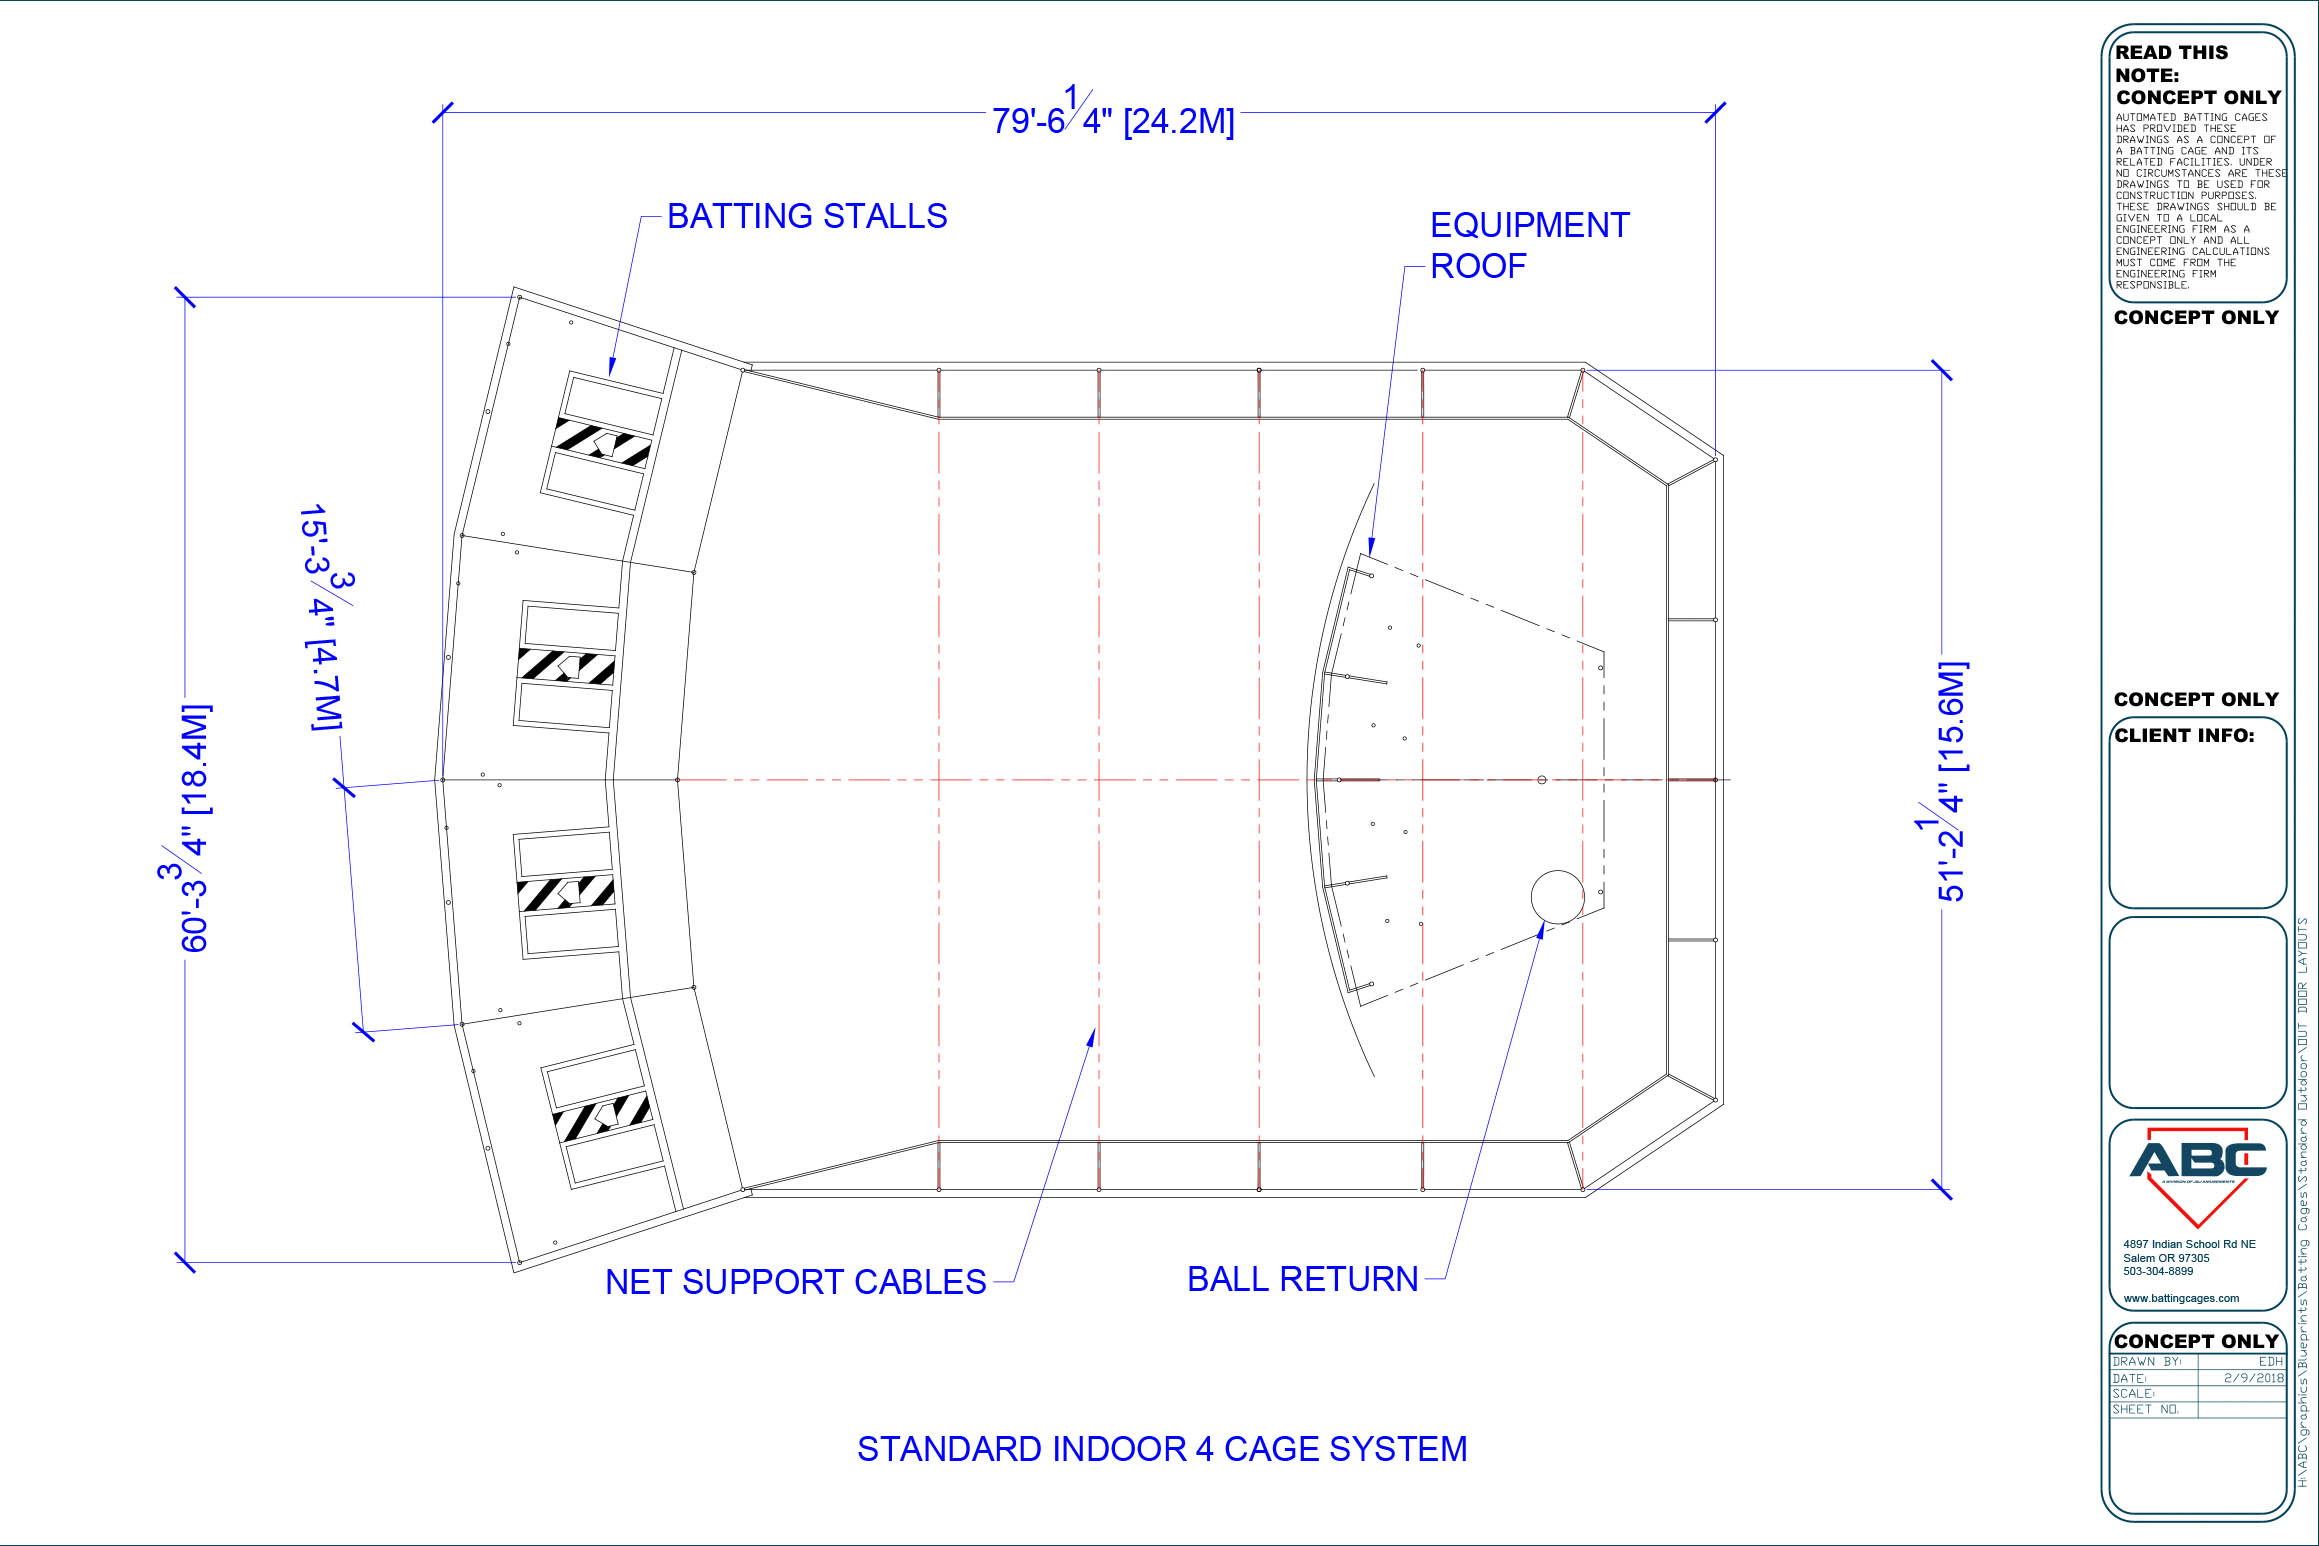 ABC standard indoor 4 cage system blueprint